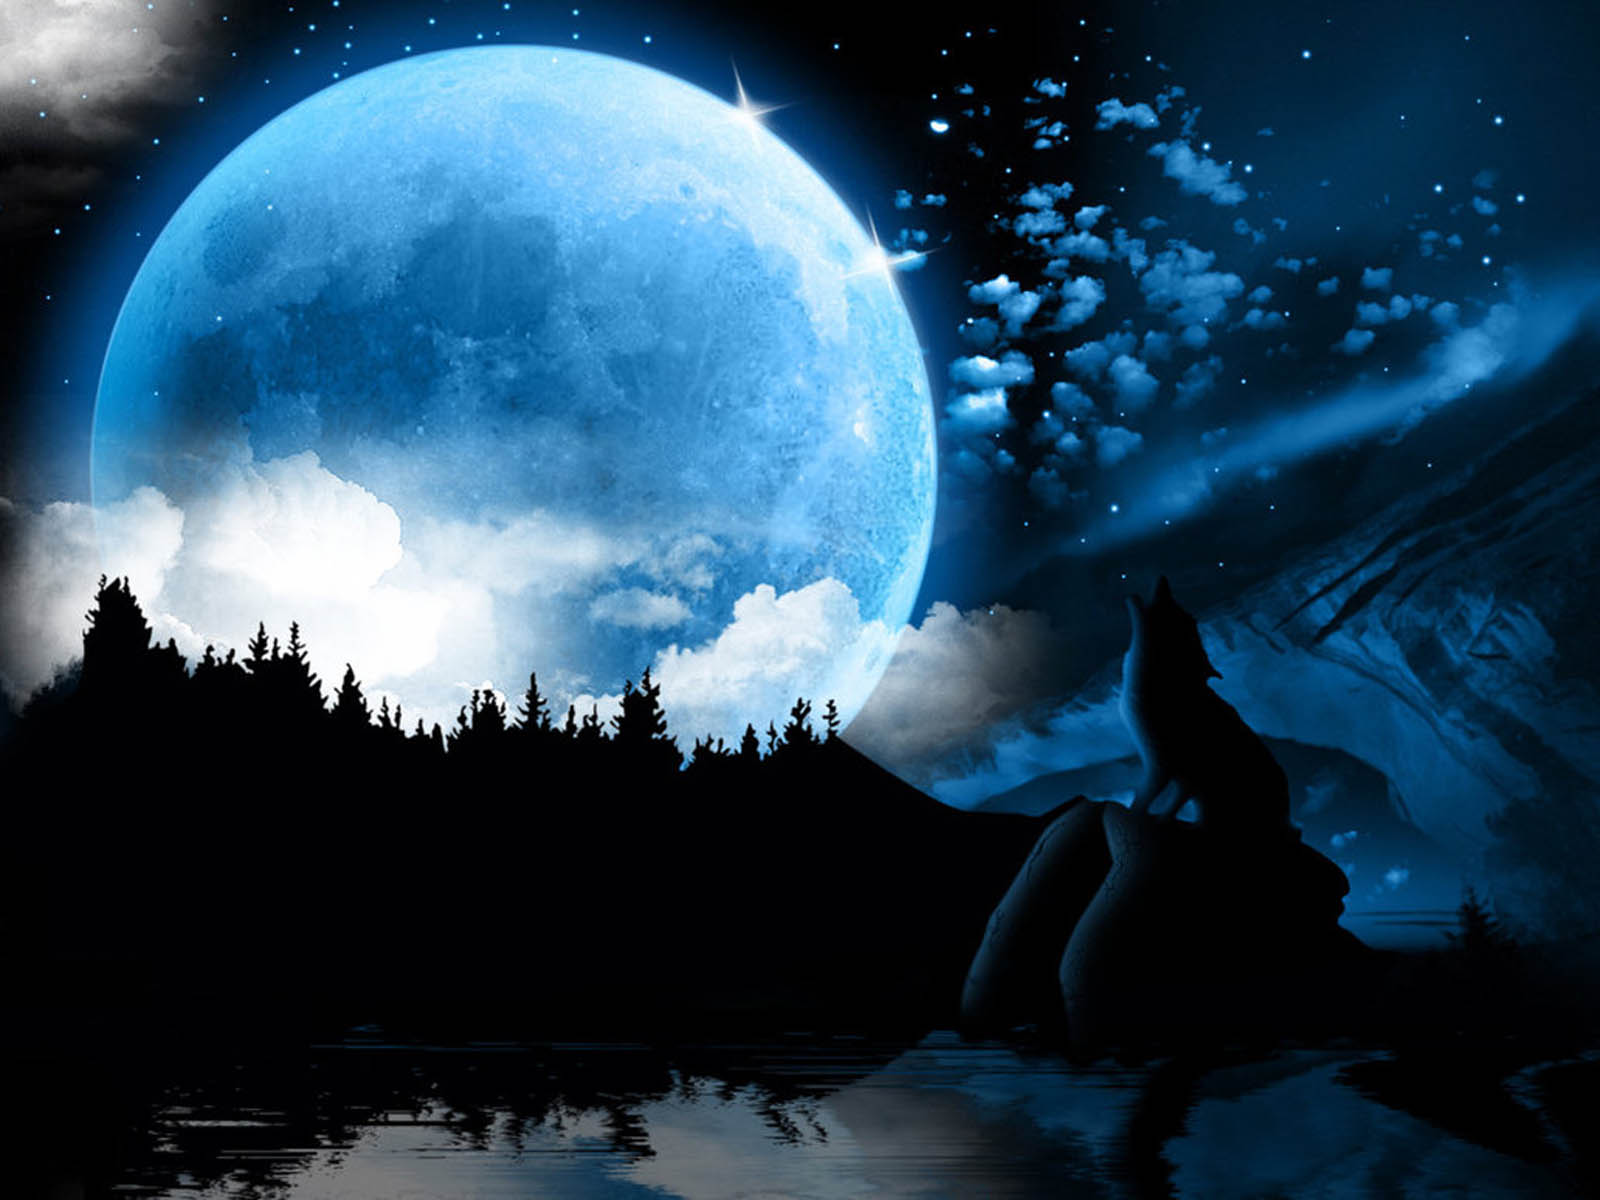 wallpapers Moon Fantasy Wallpapers 1600x1200